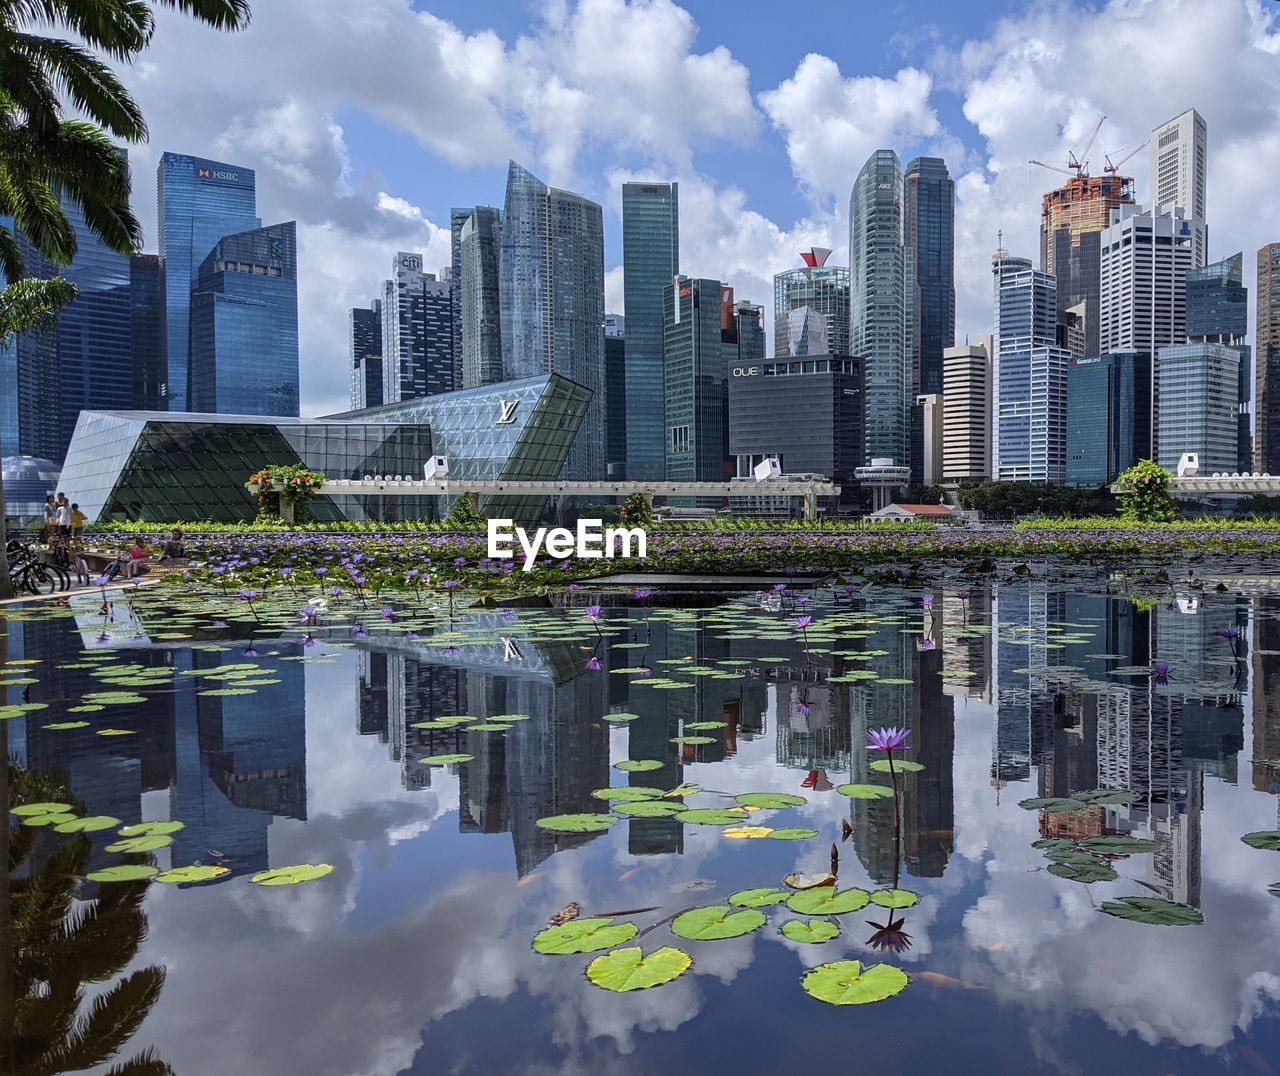 REFLECTION OF BUILDINGS ON LAKE IN CITY